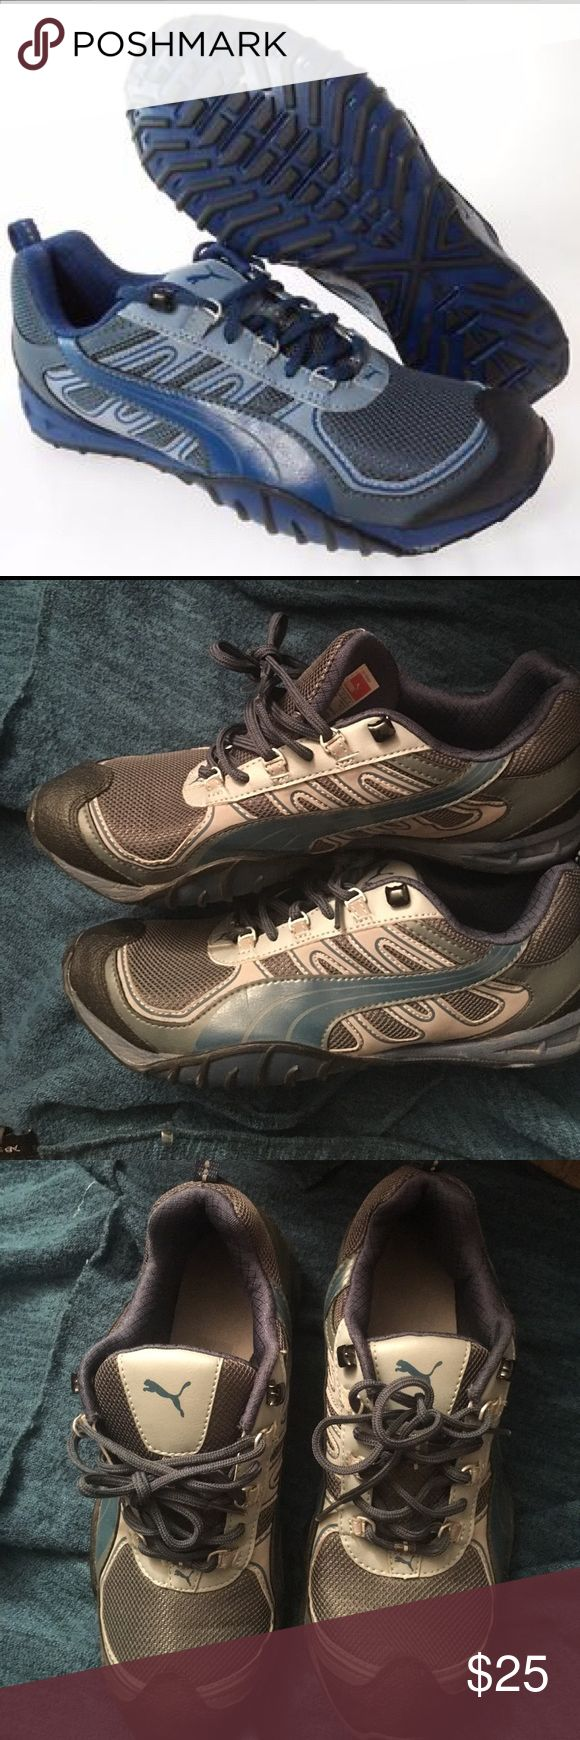 PUMA-FELLS-TRAIL-MENS-TURBULENCE RUNNING-SHOES On wore them like 3 times literally they are in brand new condition . Puma Shoes Athletic Shoes